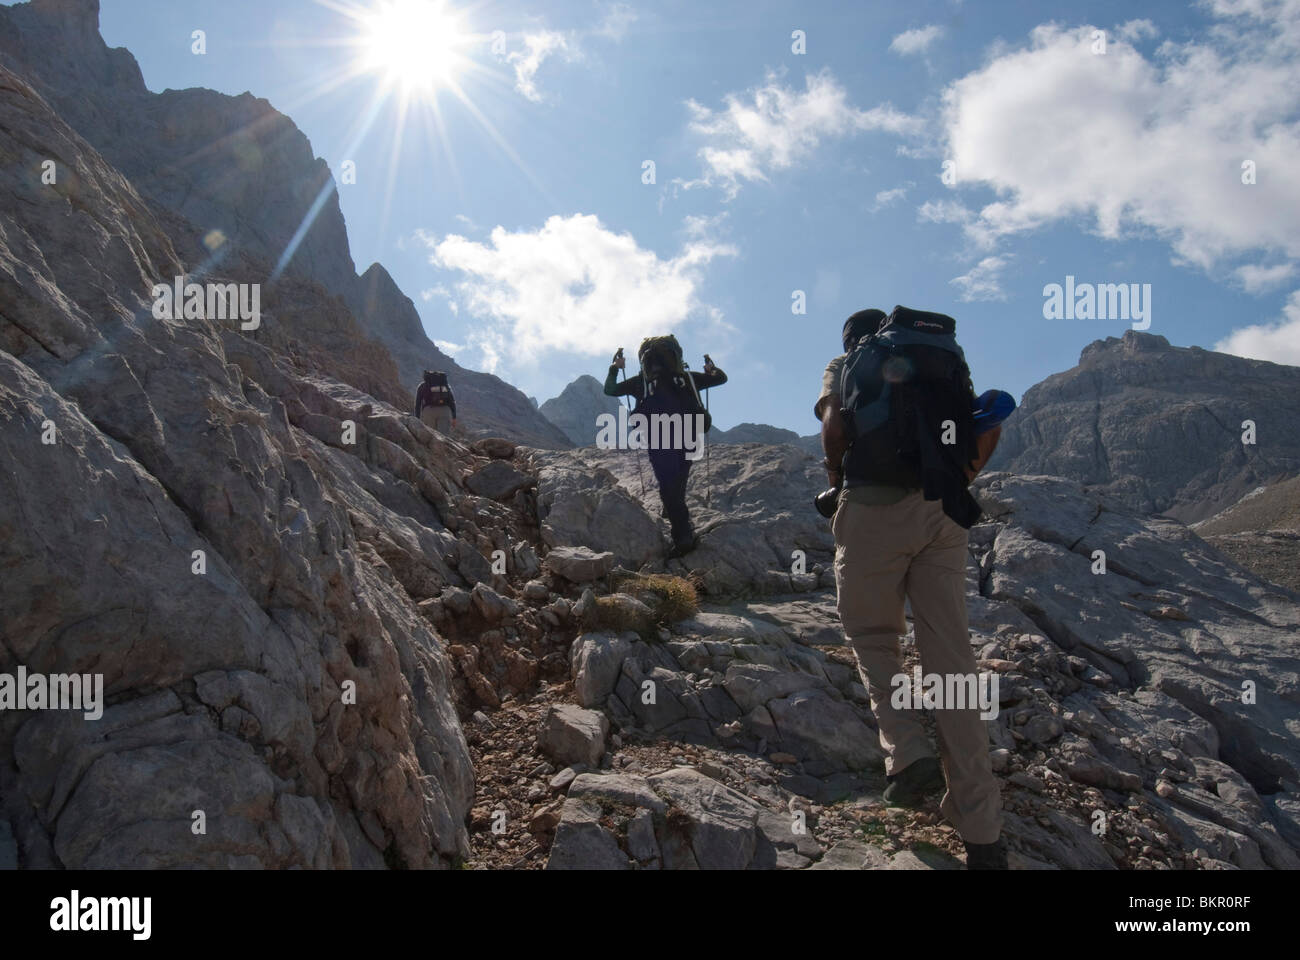 Scrambling in the Central Massif, Picos de Europa, Northern Spain - Stock Image